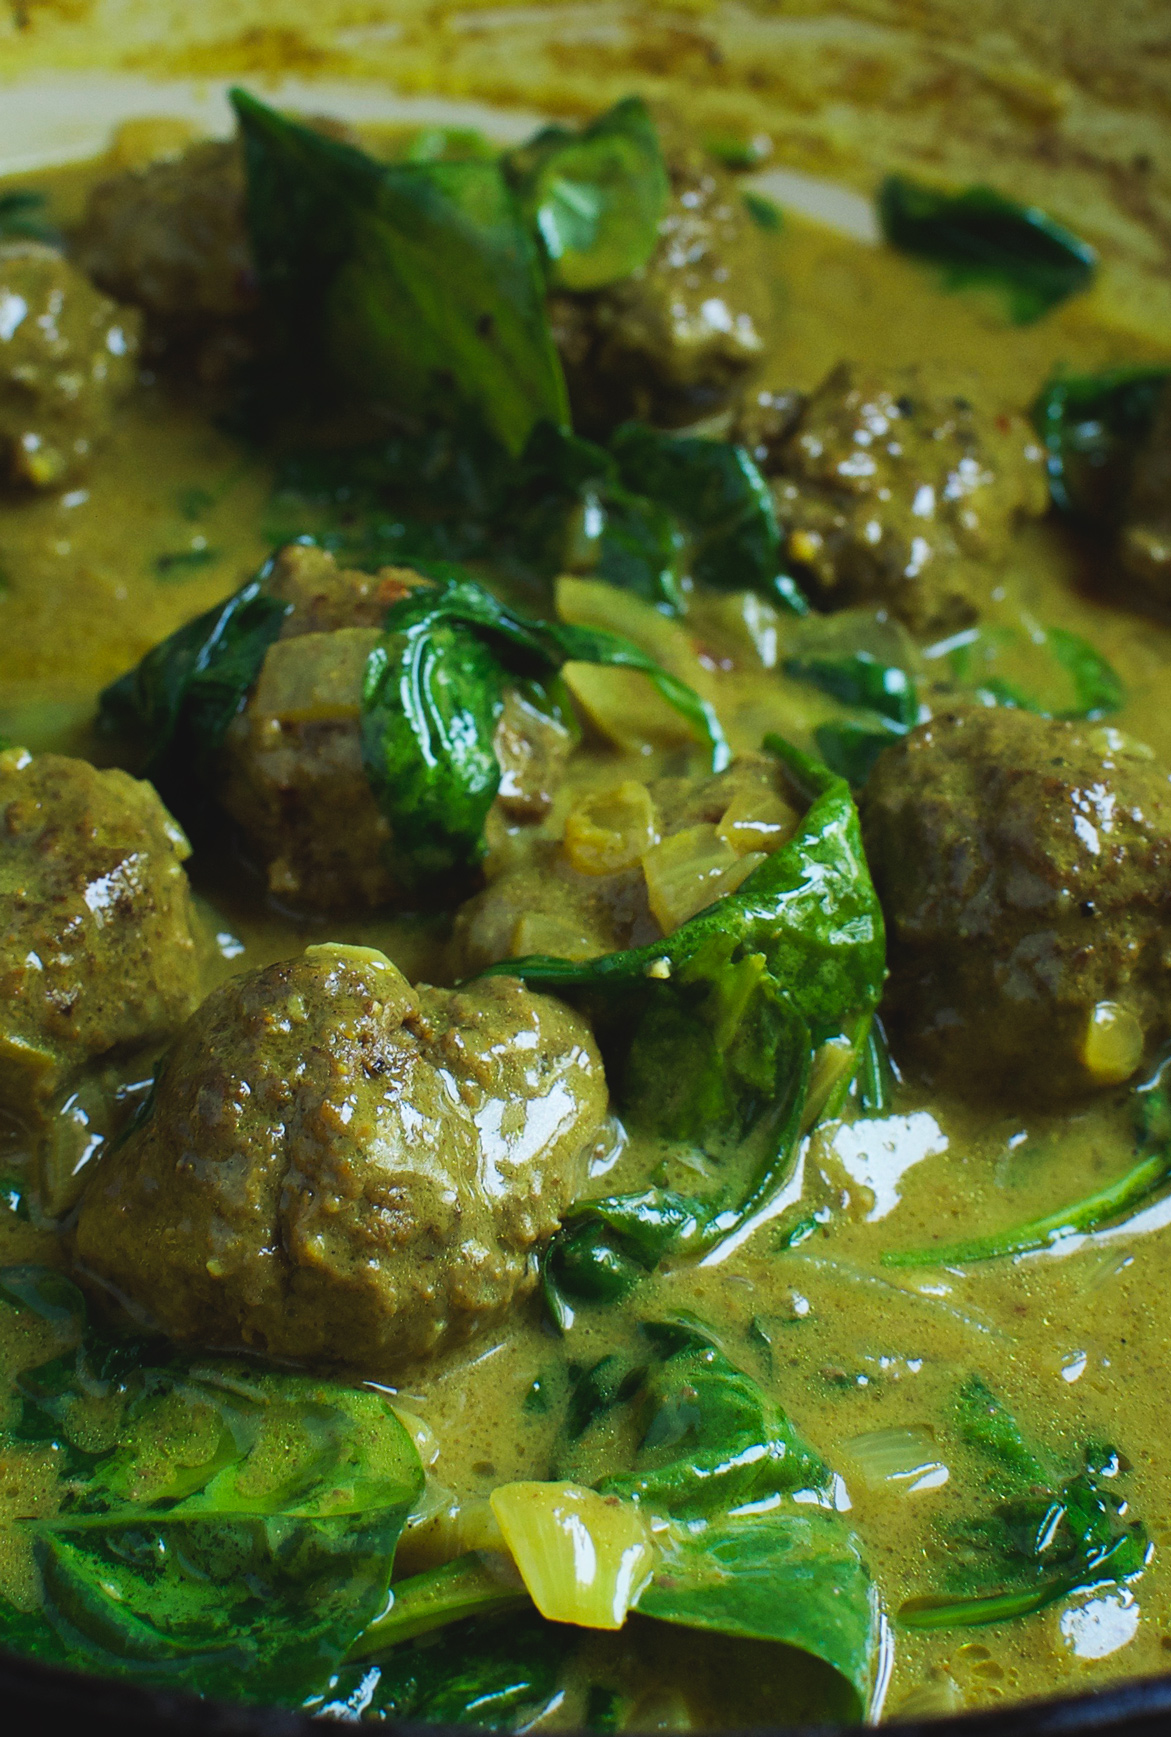 These Paleo curried meatballs will please the whole family! They are gluten-free, dairy-free and grain free. What a delicious, nutrition-packed weekday meal!